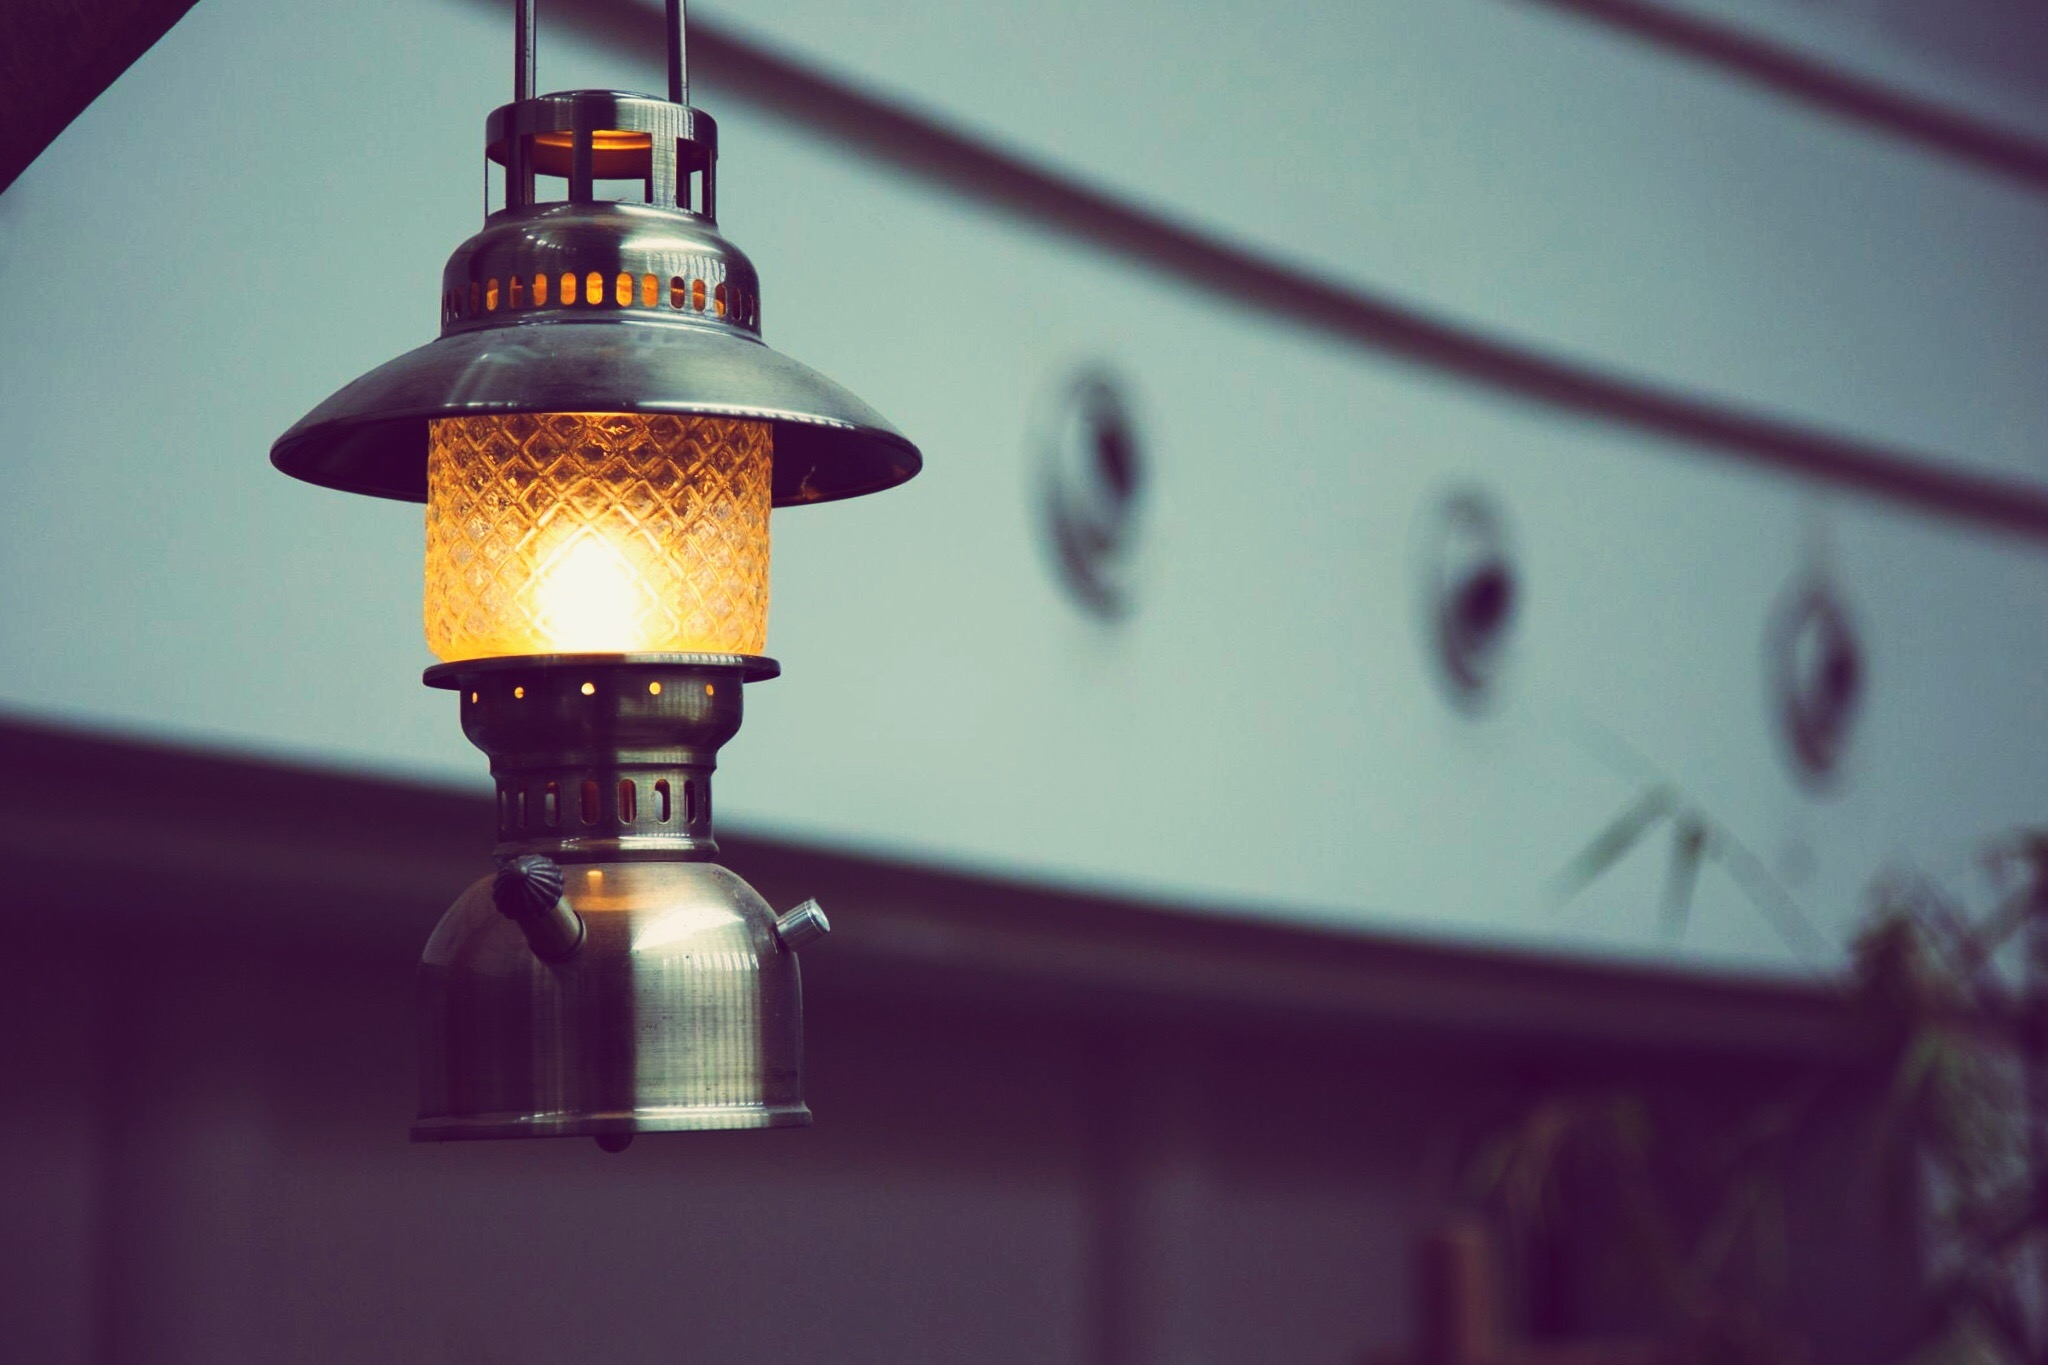 Diy Kerosene Lamp What Kind Of Oil Do You Put In Lamps Lanterns Home Guides